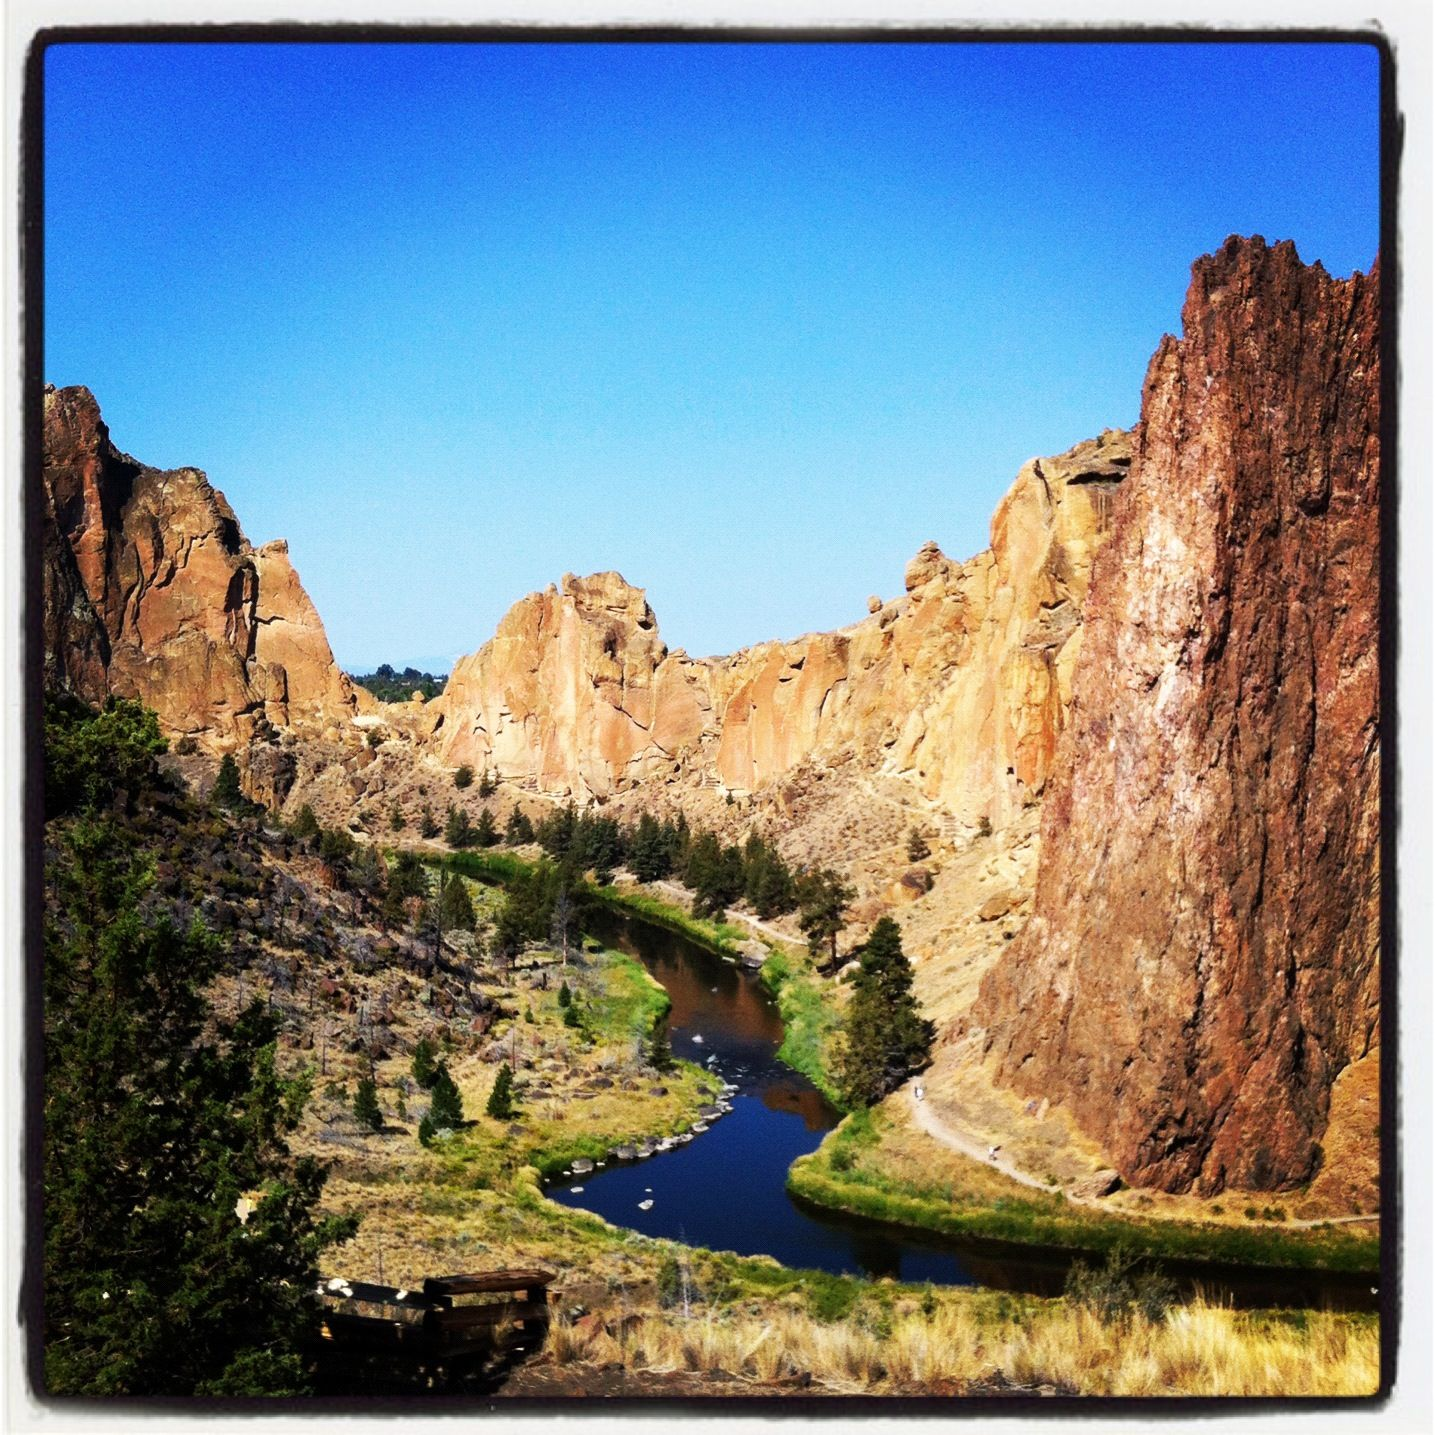 smith rock state park - photo #12